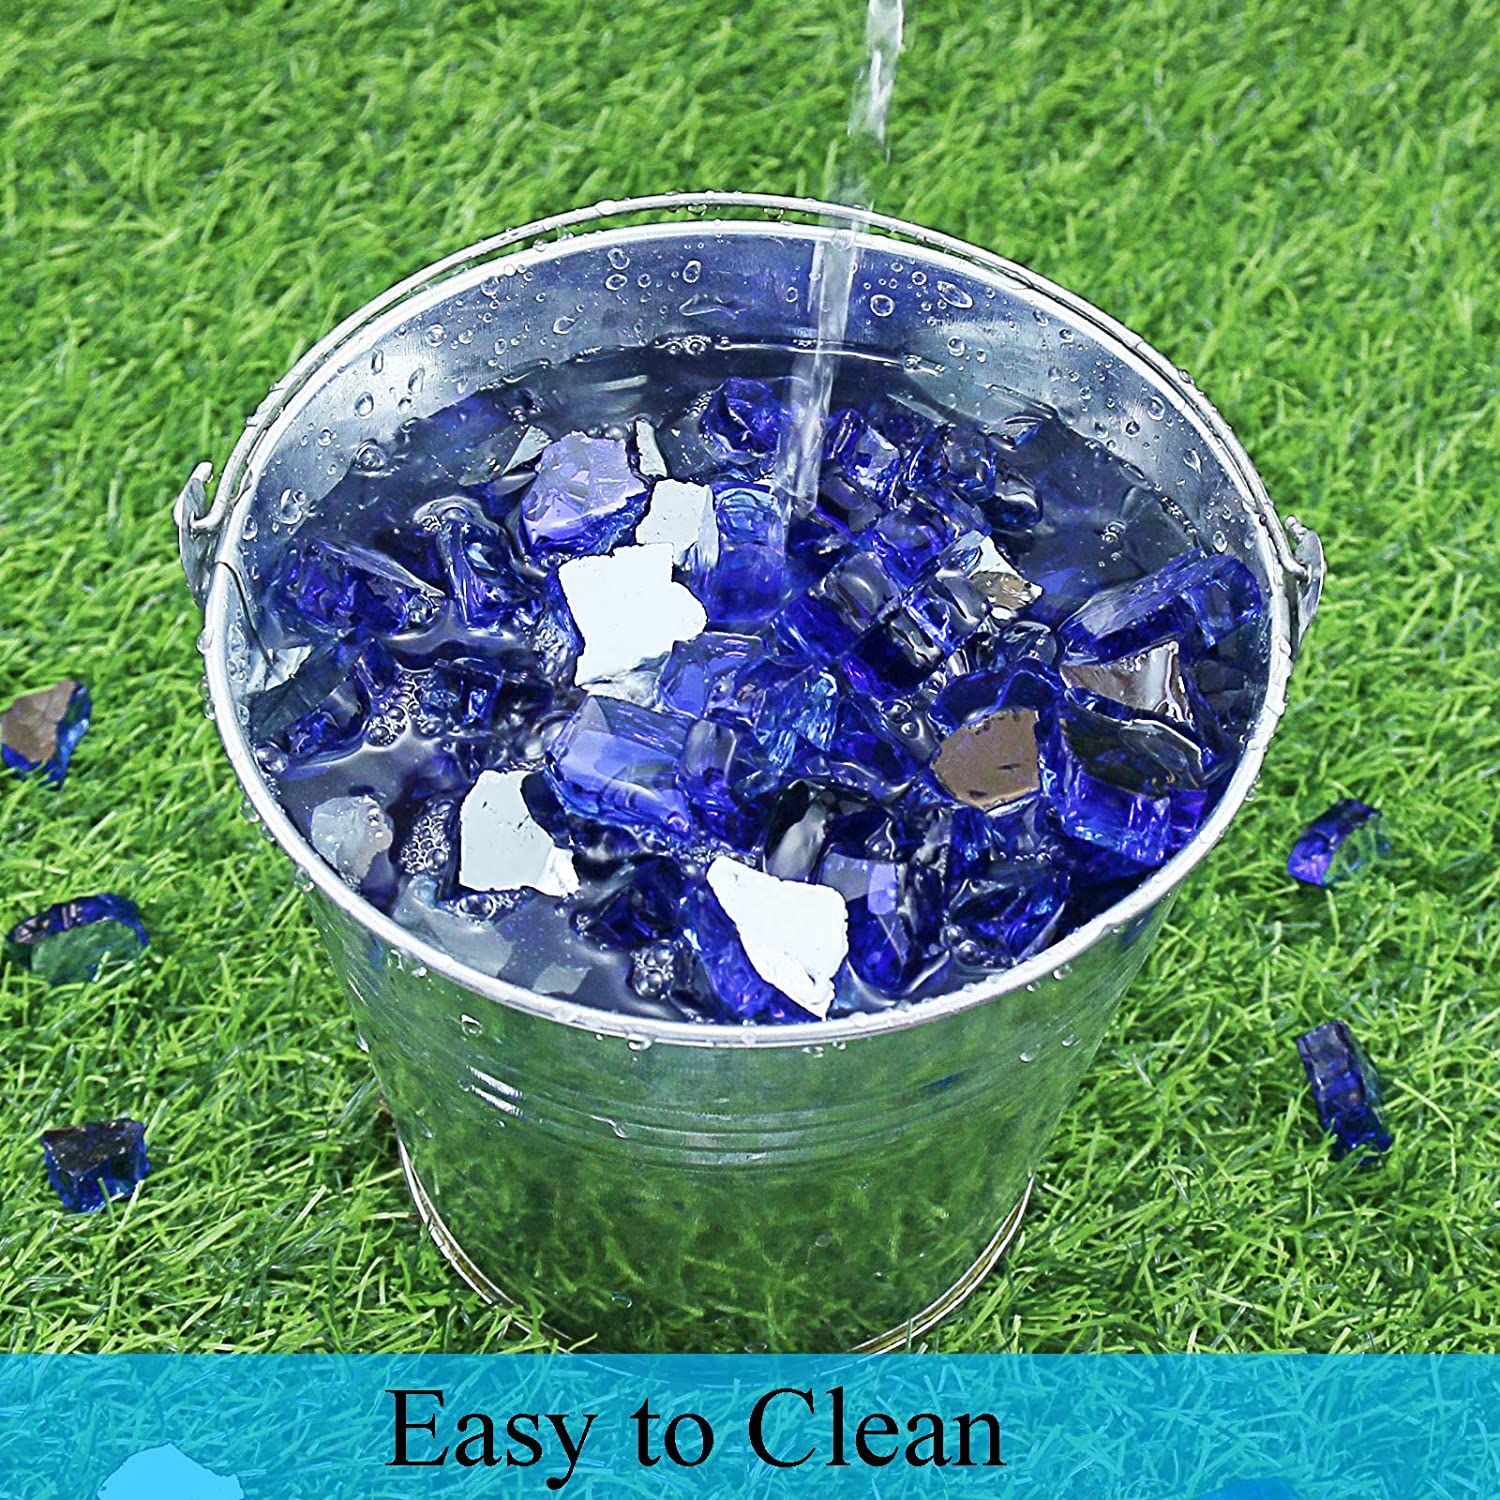 Tempered Glass Rocks Good for Indoor and Outdoor 10-Pounds Fireplace Hisencn 1//2 Inch Cobalt Blue Reflective Fire Glass Decorative for Natural or Propane Fire Pit